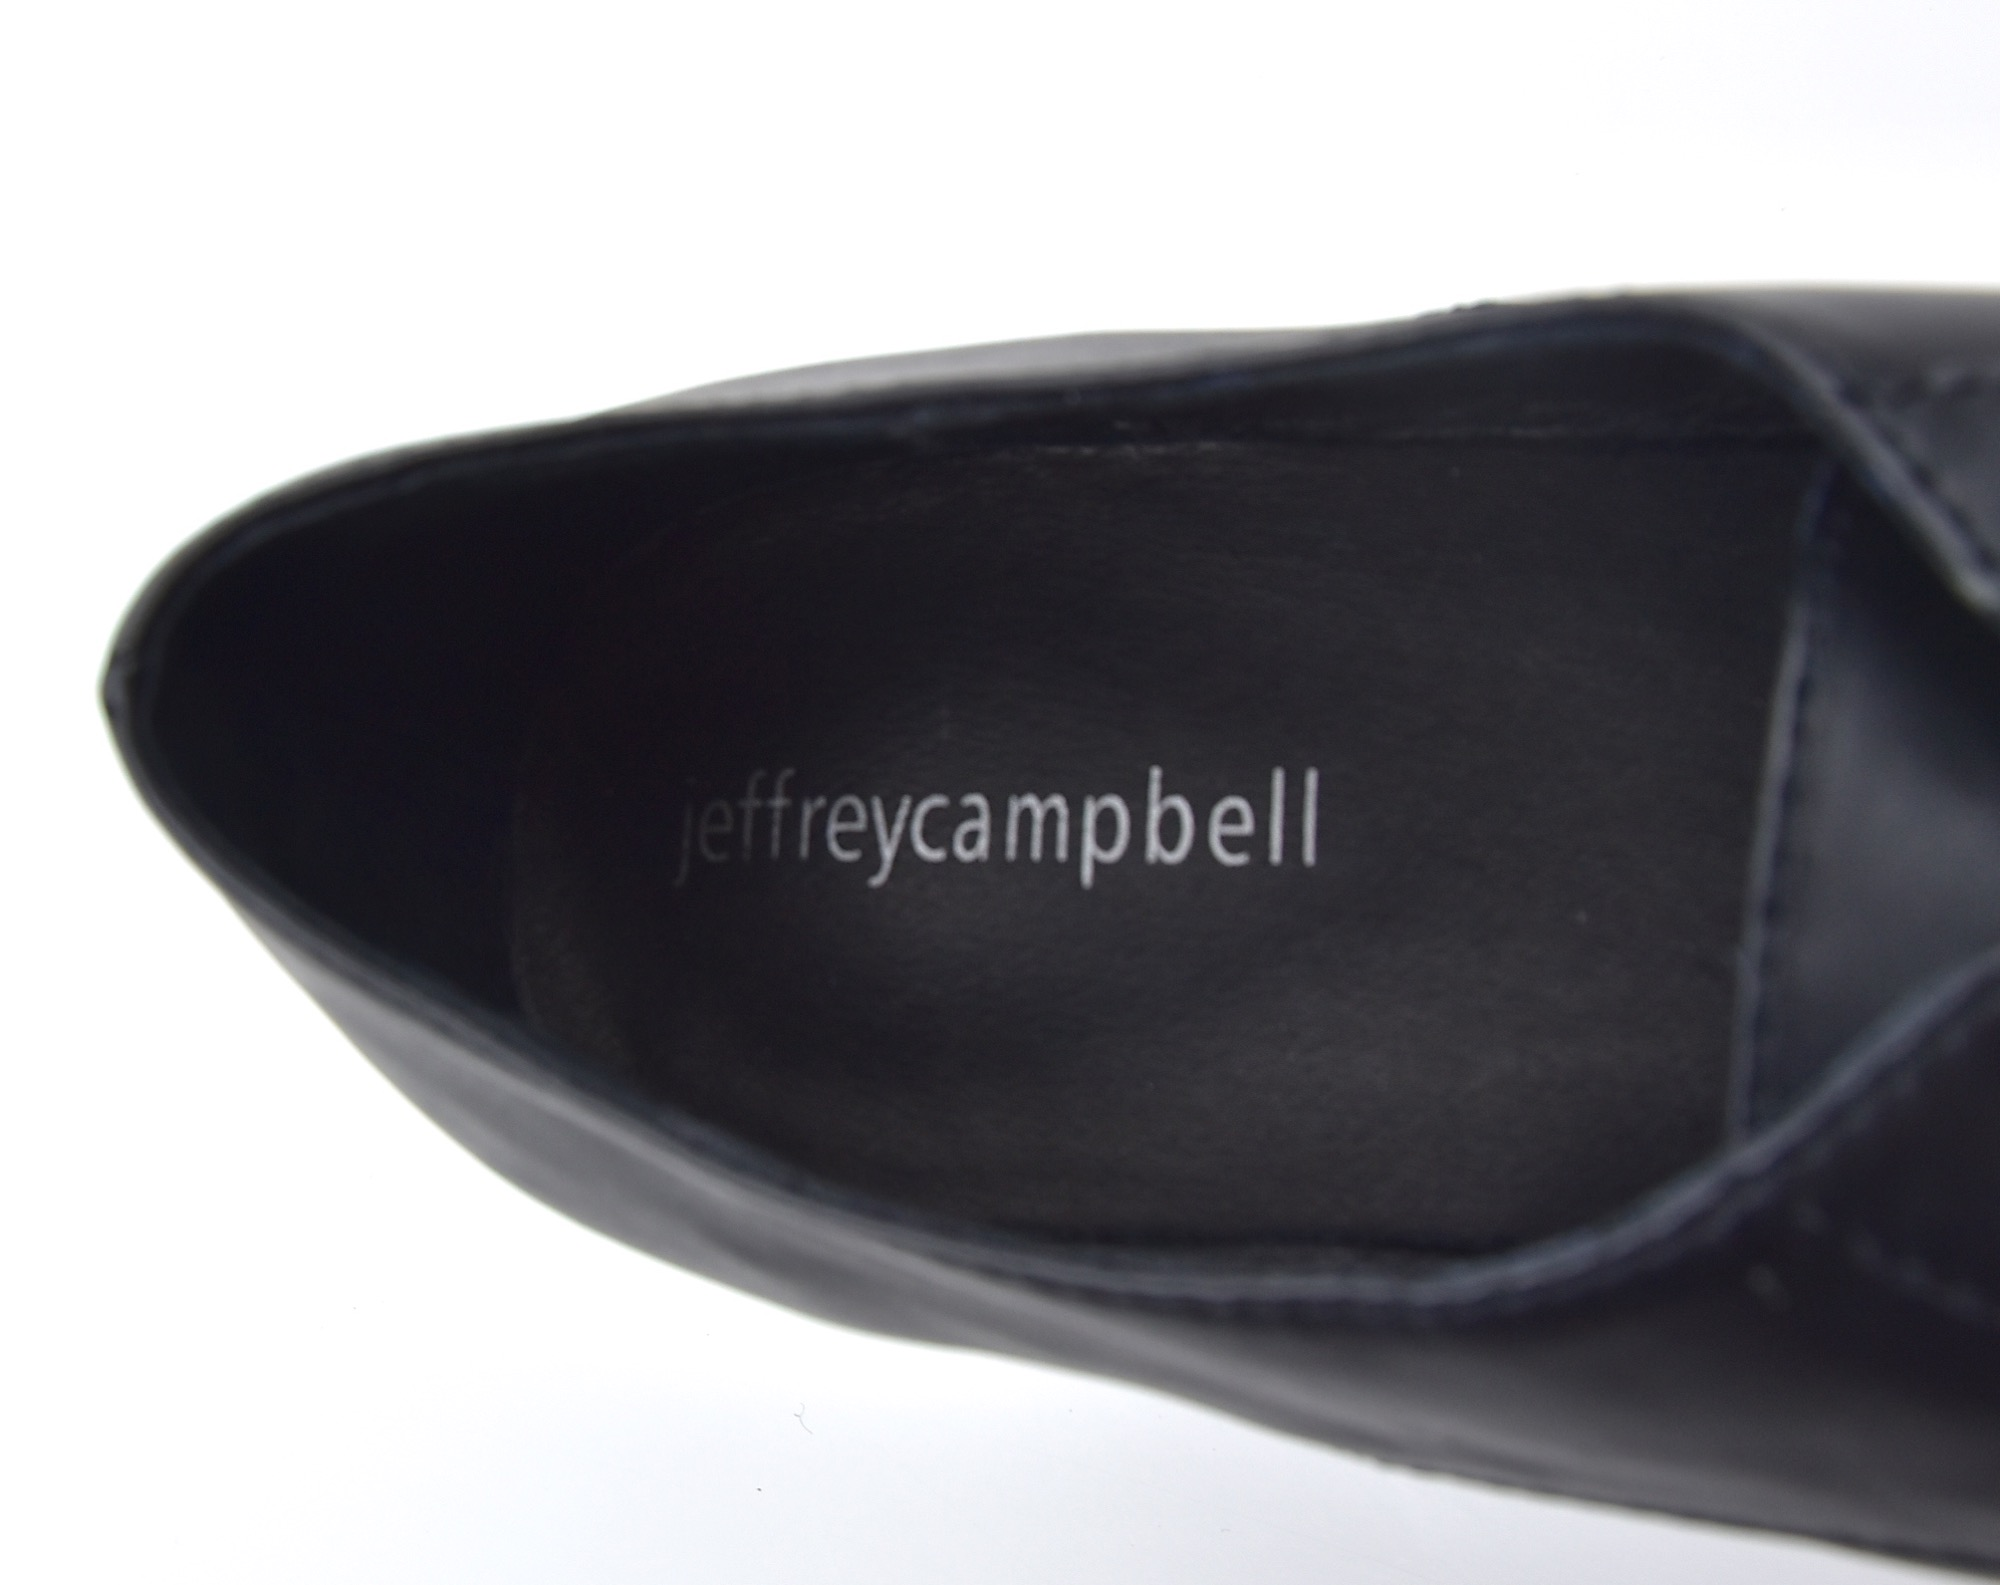 JEFFREY CAMPBELL DONNA SCARPA BUSINESS DERBY CLASSICA CON ZEPPA ART.  BERLINER 0e03c3c4839